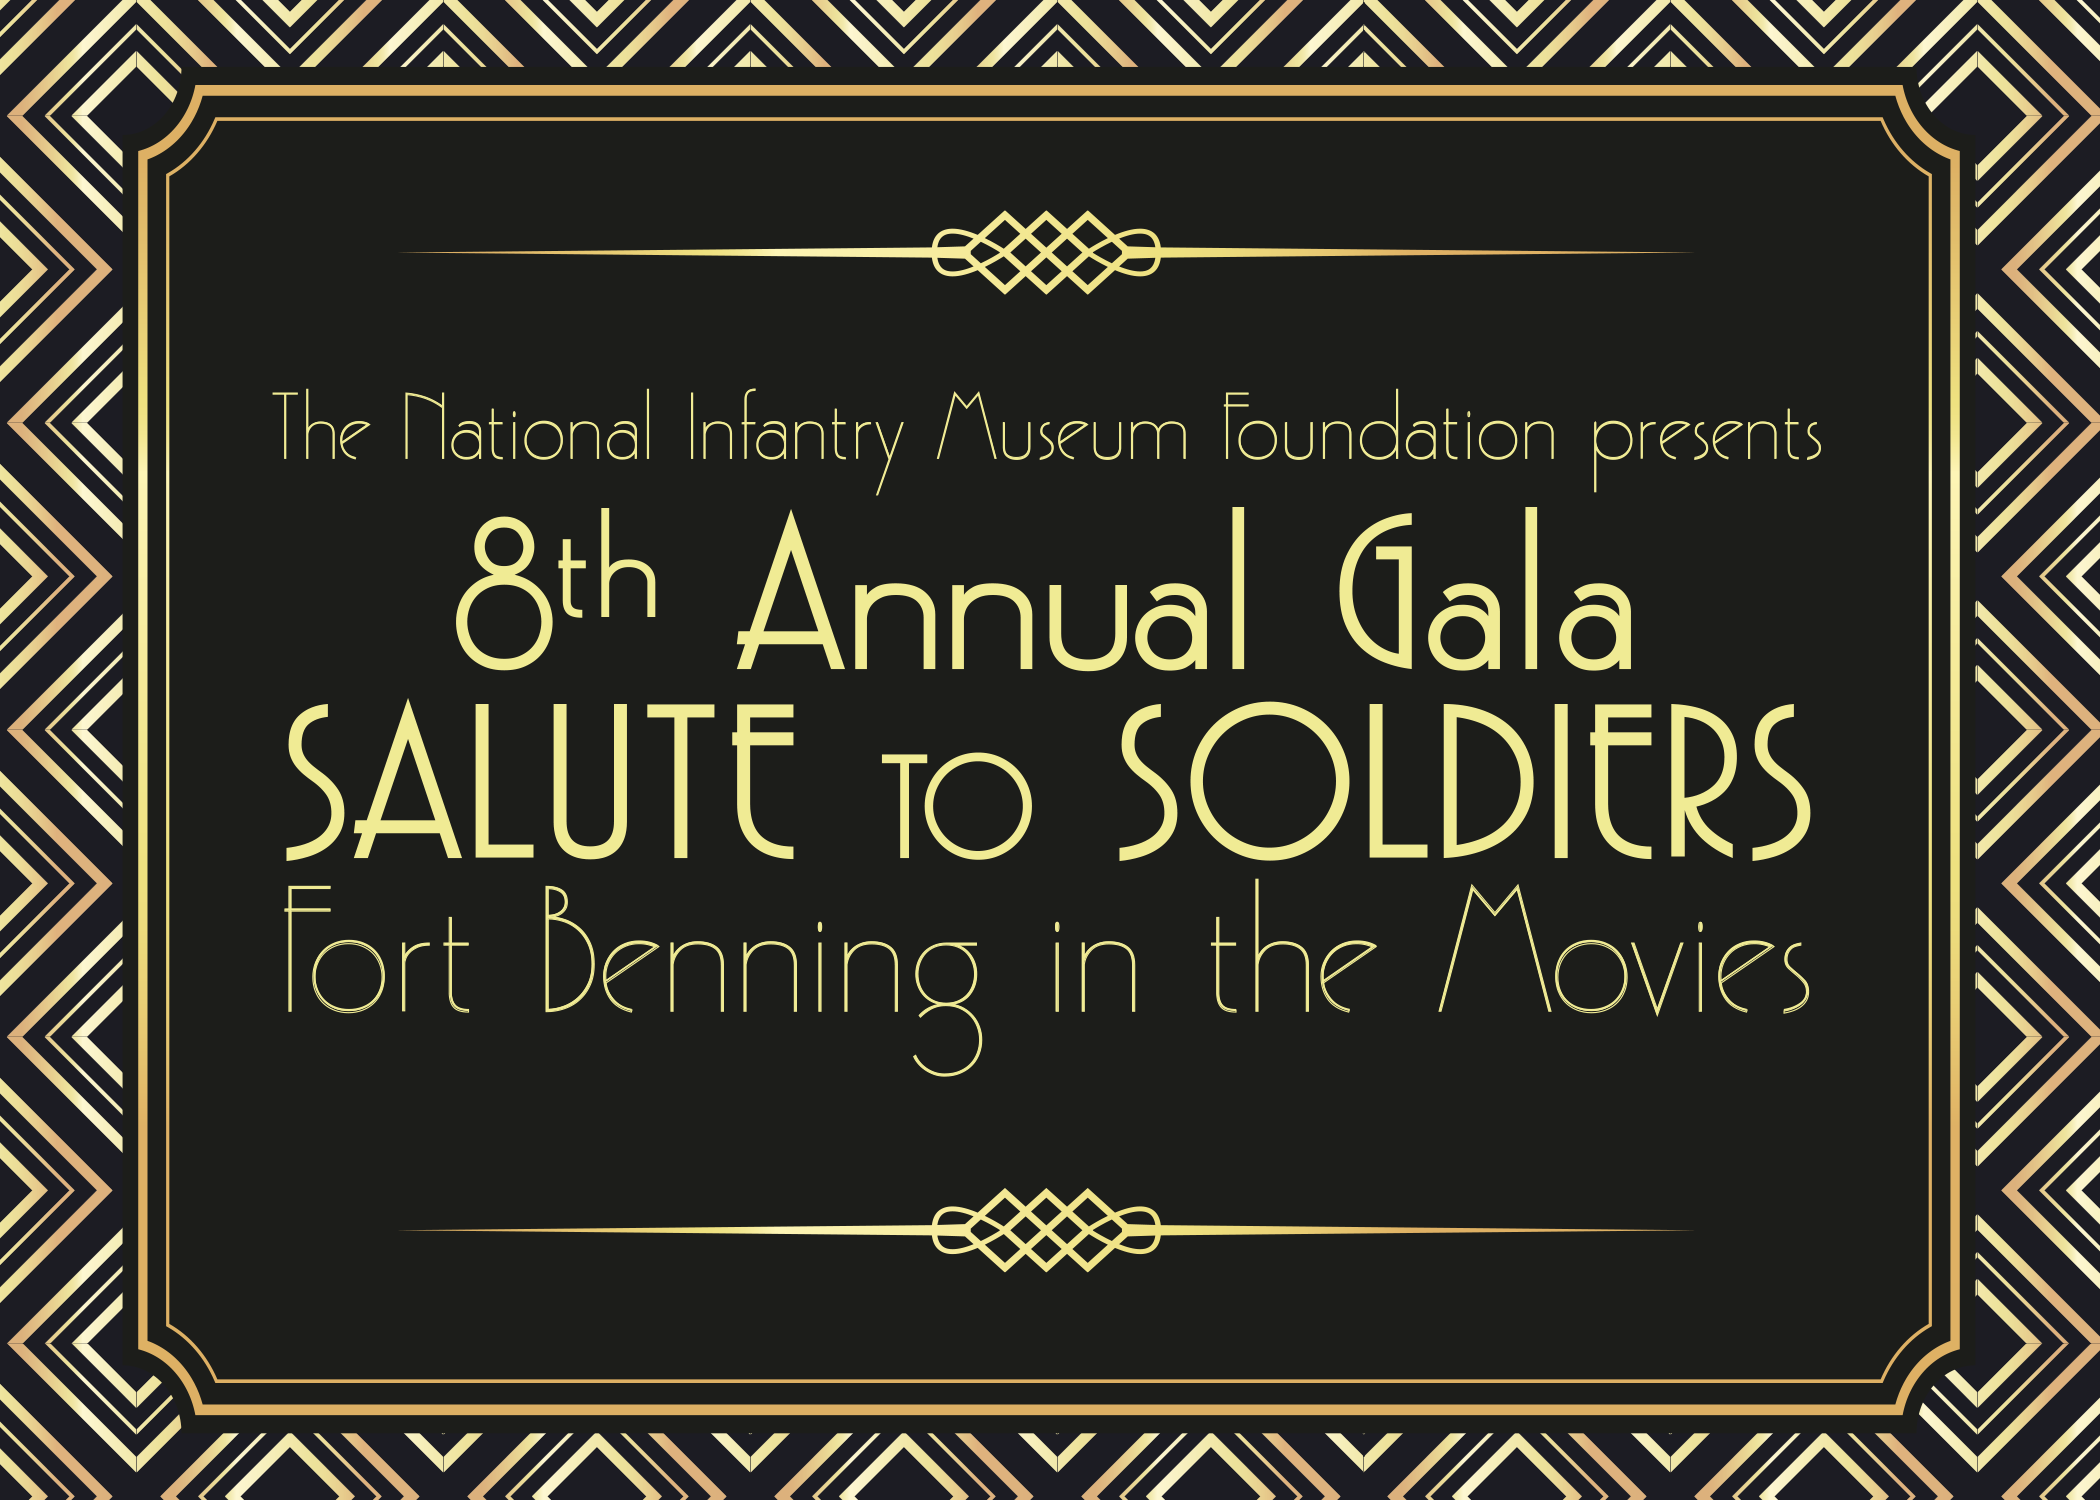 Salute to Soldiers Gala and Silent Auction